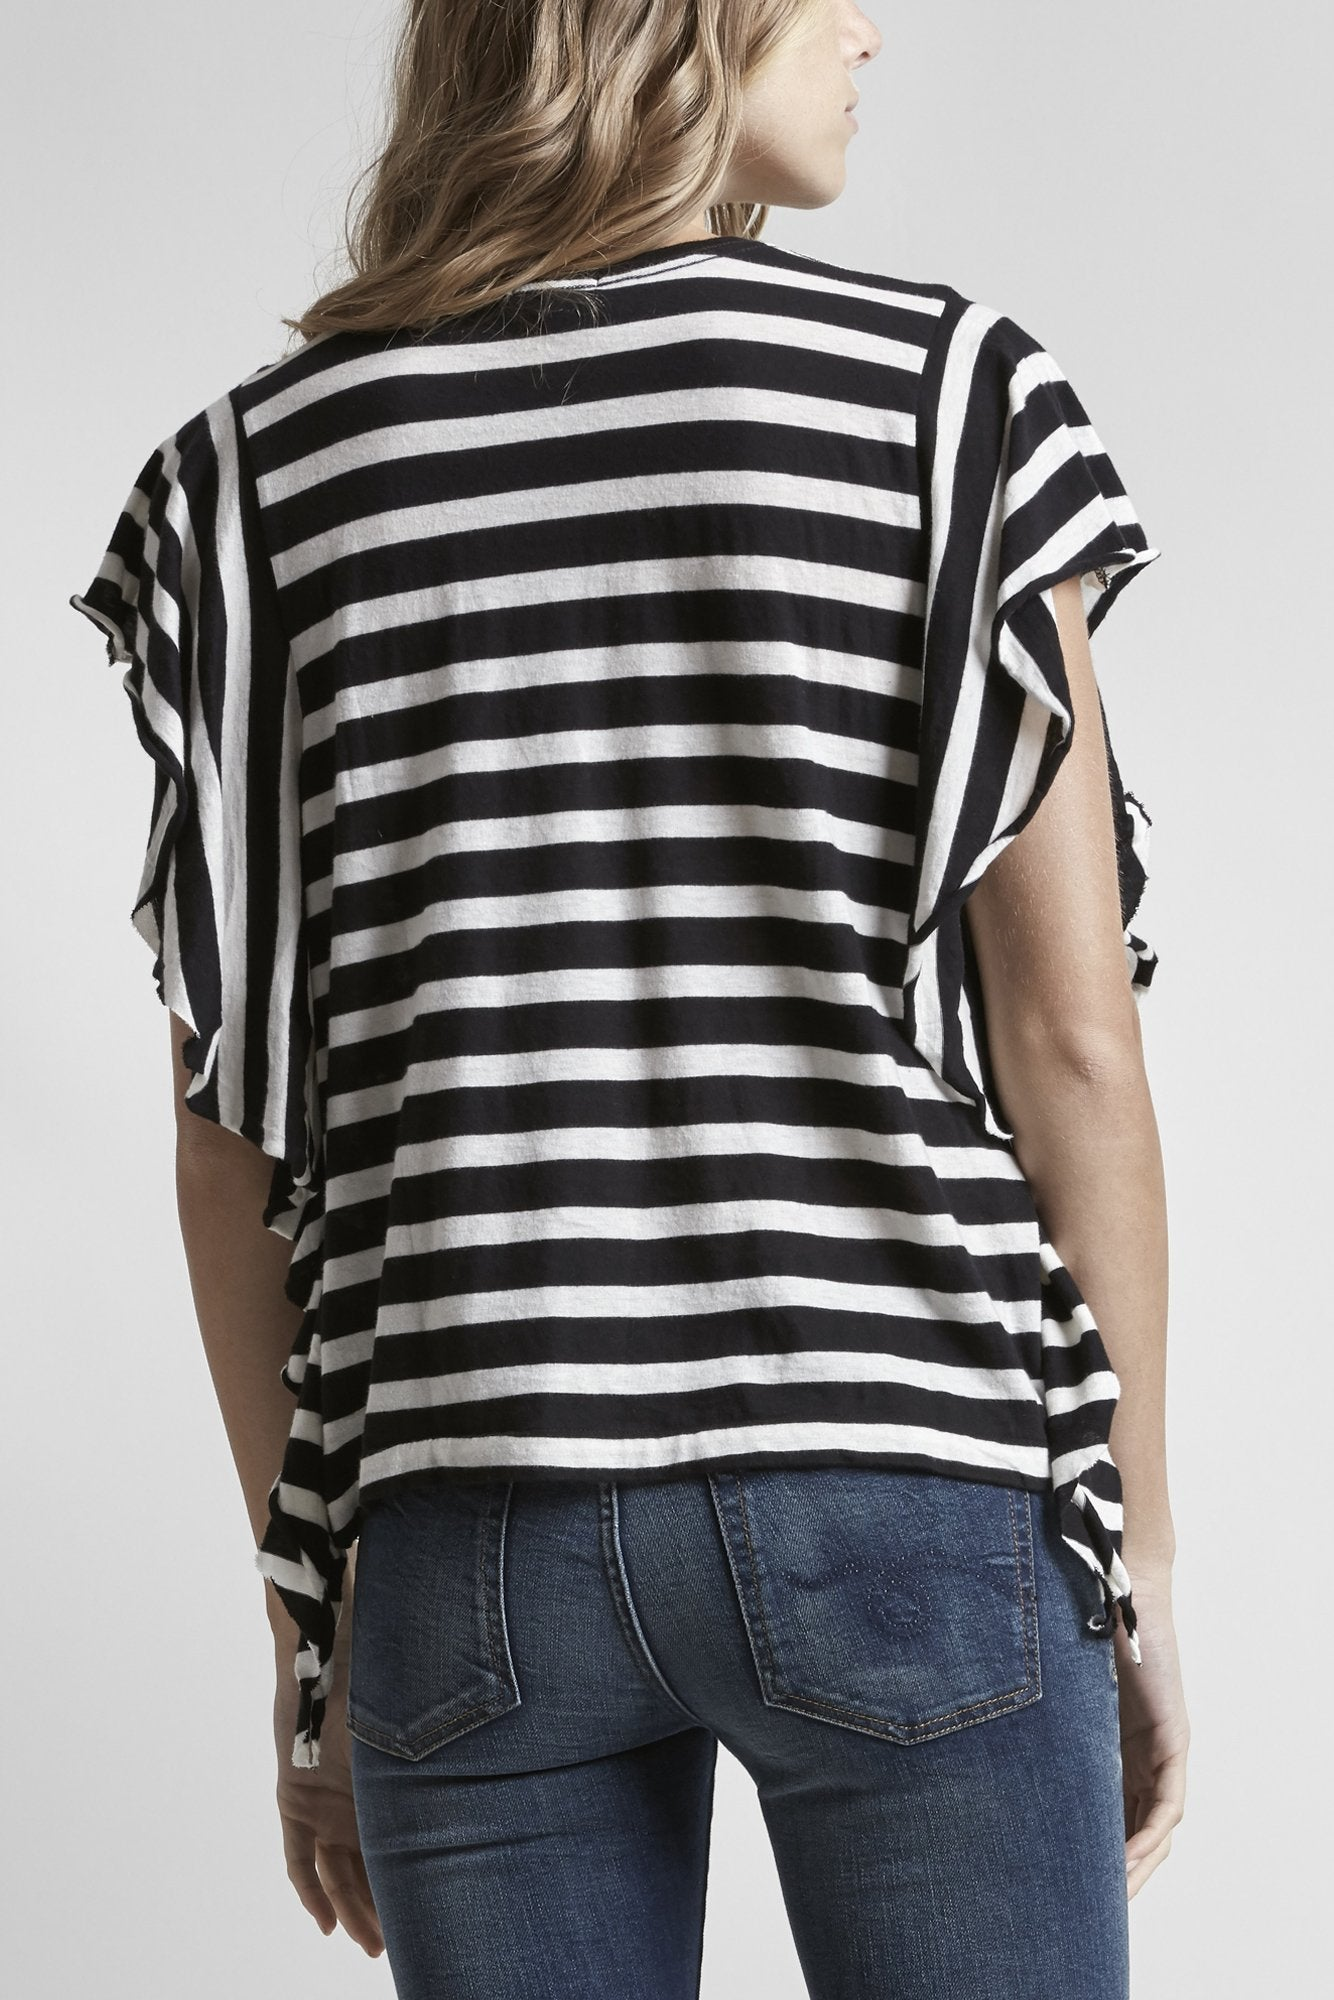 Striped Flutter T - Black and White Stripe